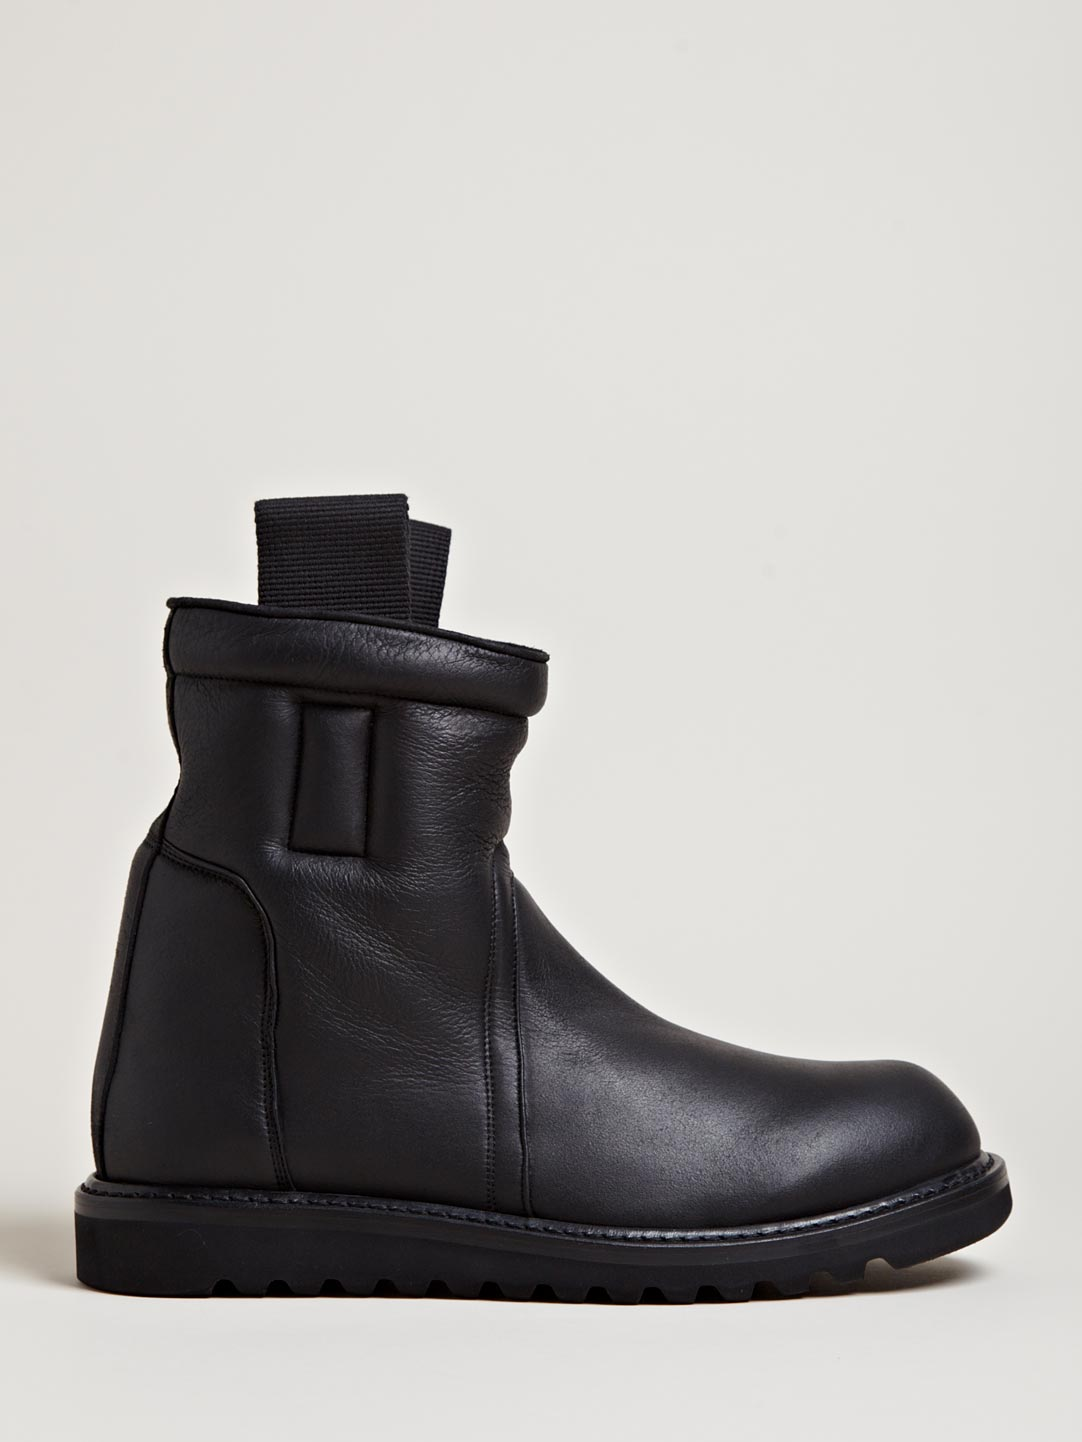 Rick Owens Mens Shearling Lined Boots In Black For Men Lyst